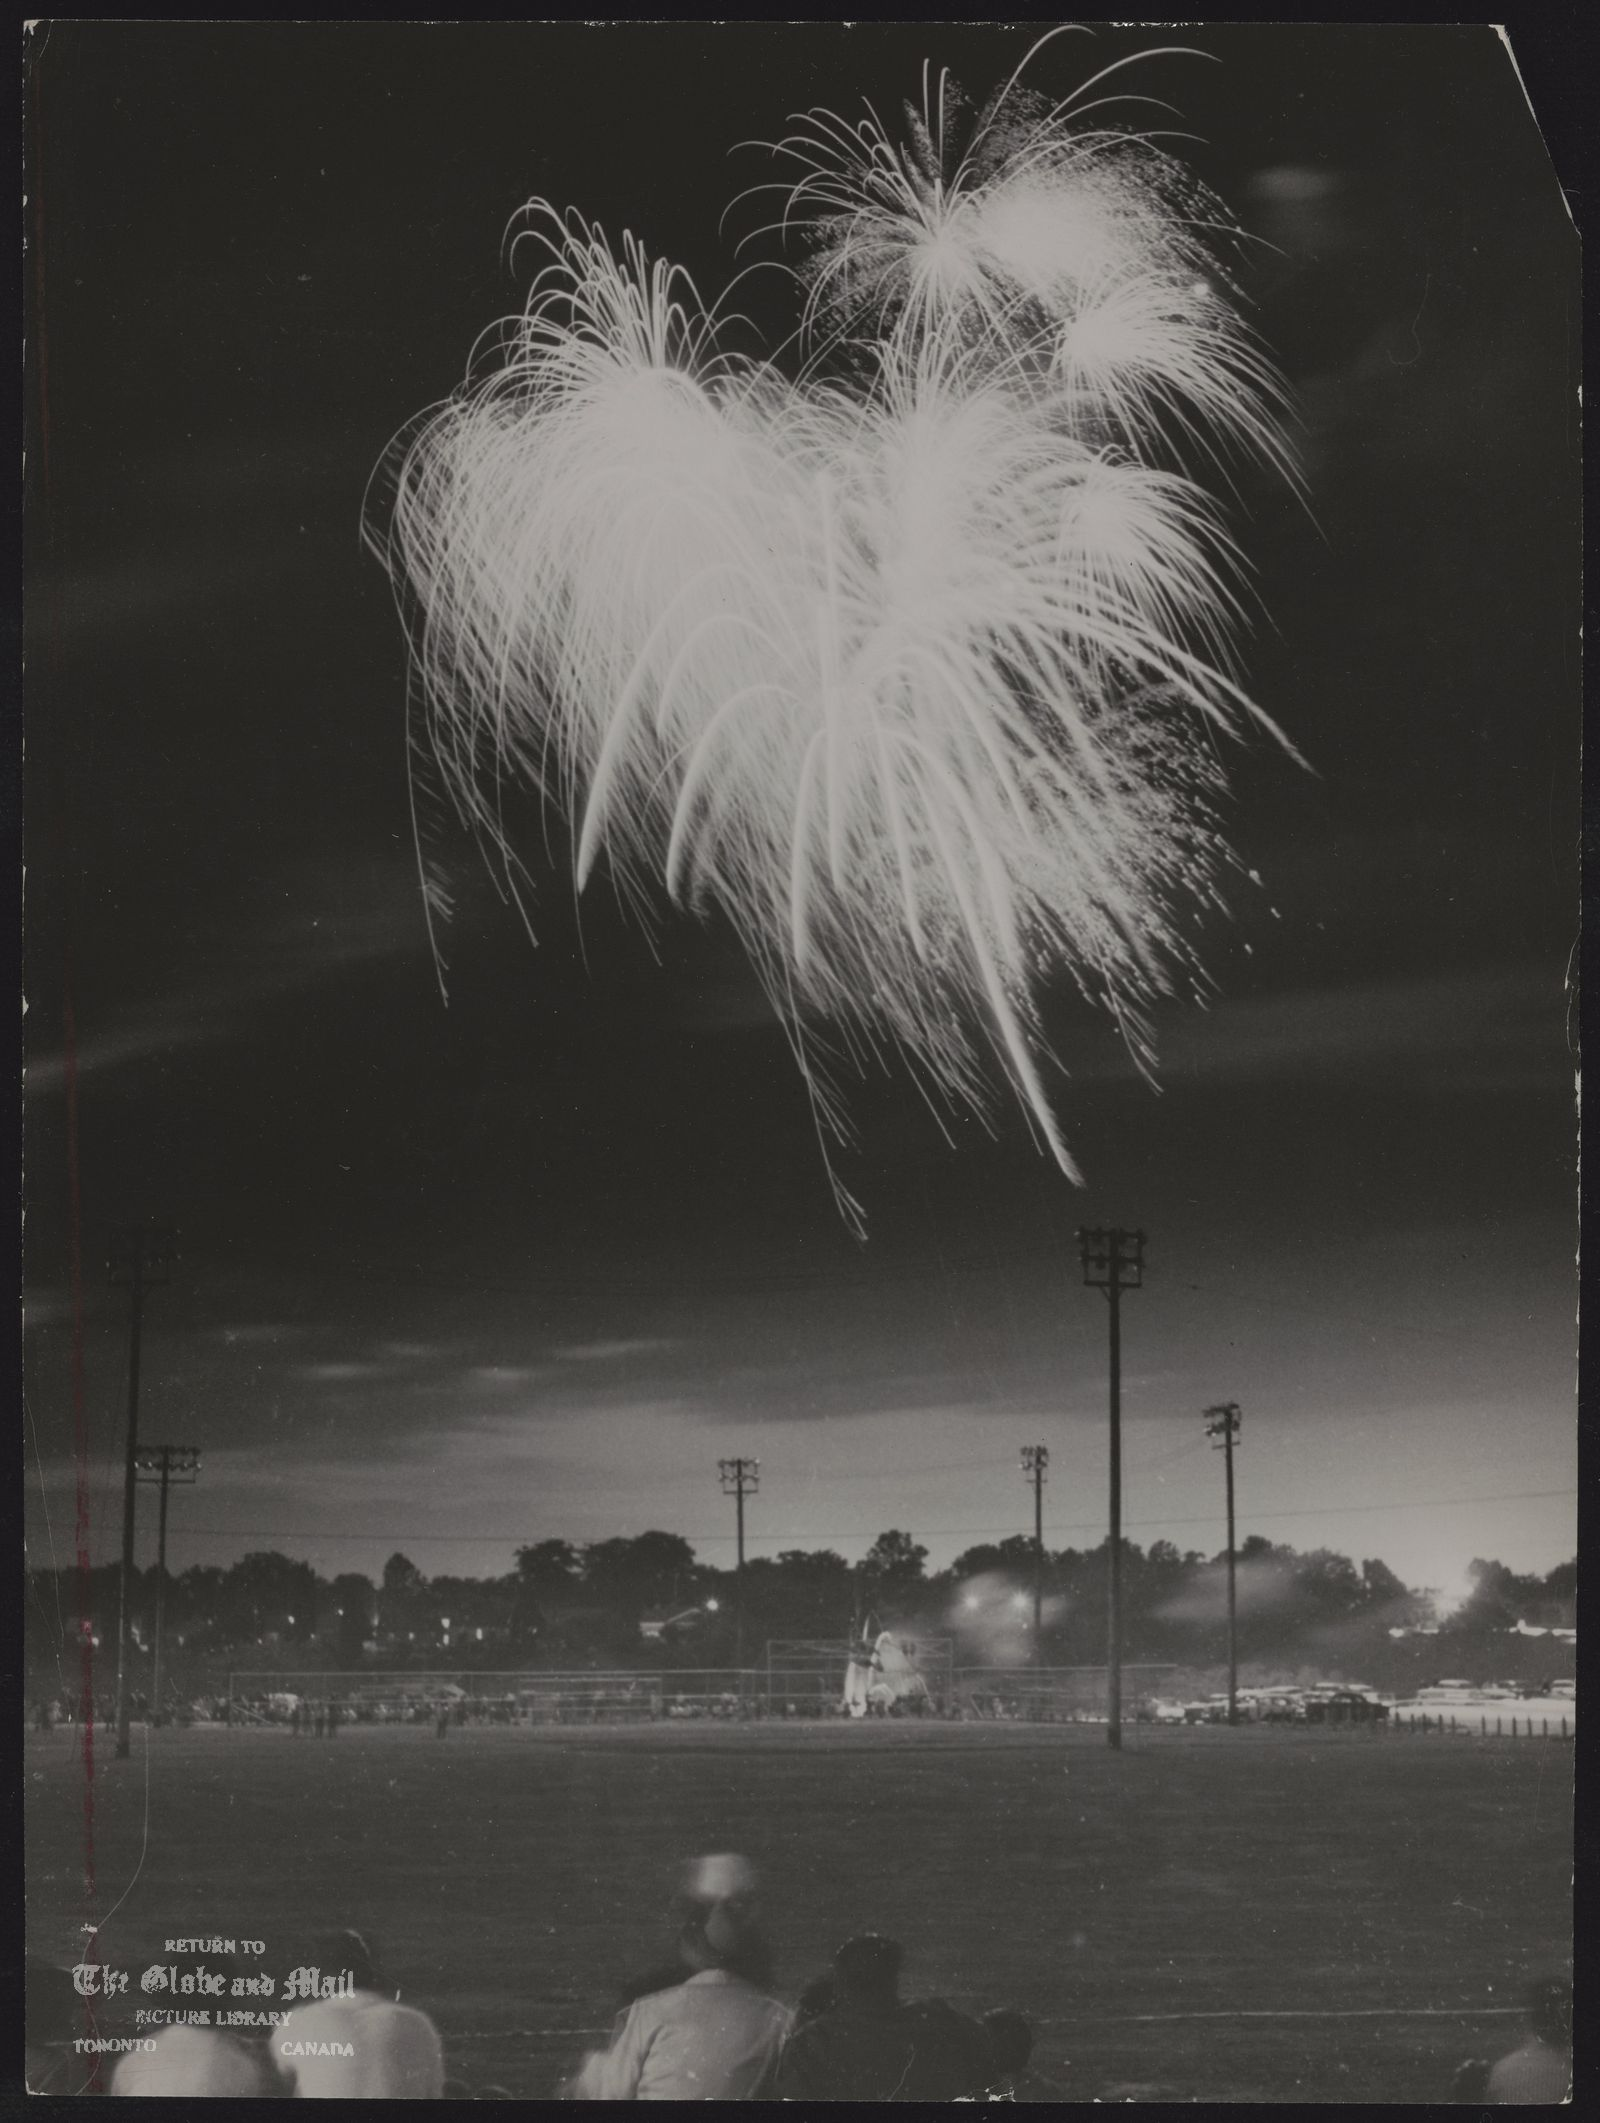 FIREWORKS (LF) [July 1, 1960], fireworks over Cedarvale Park mark DOMINION DAY